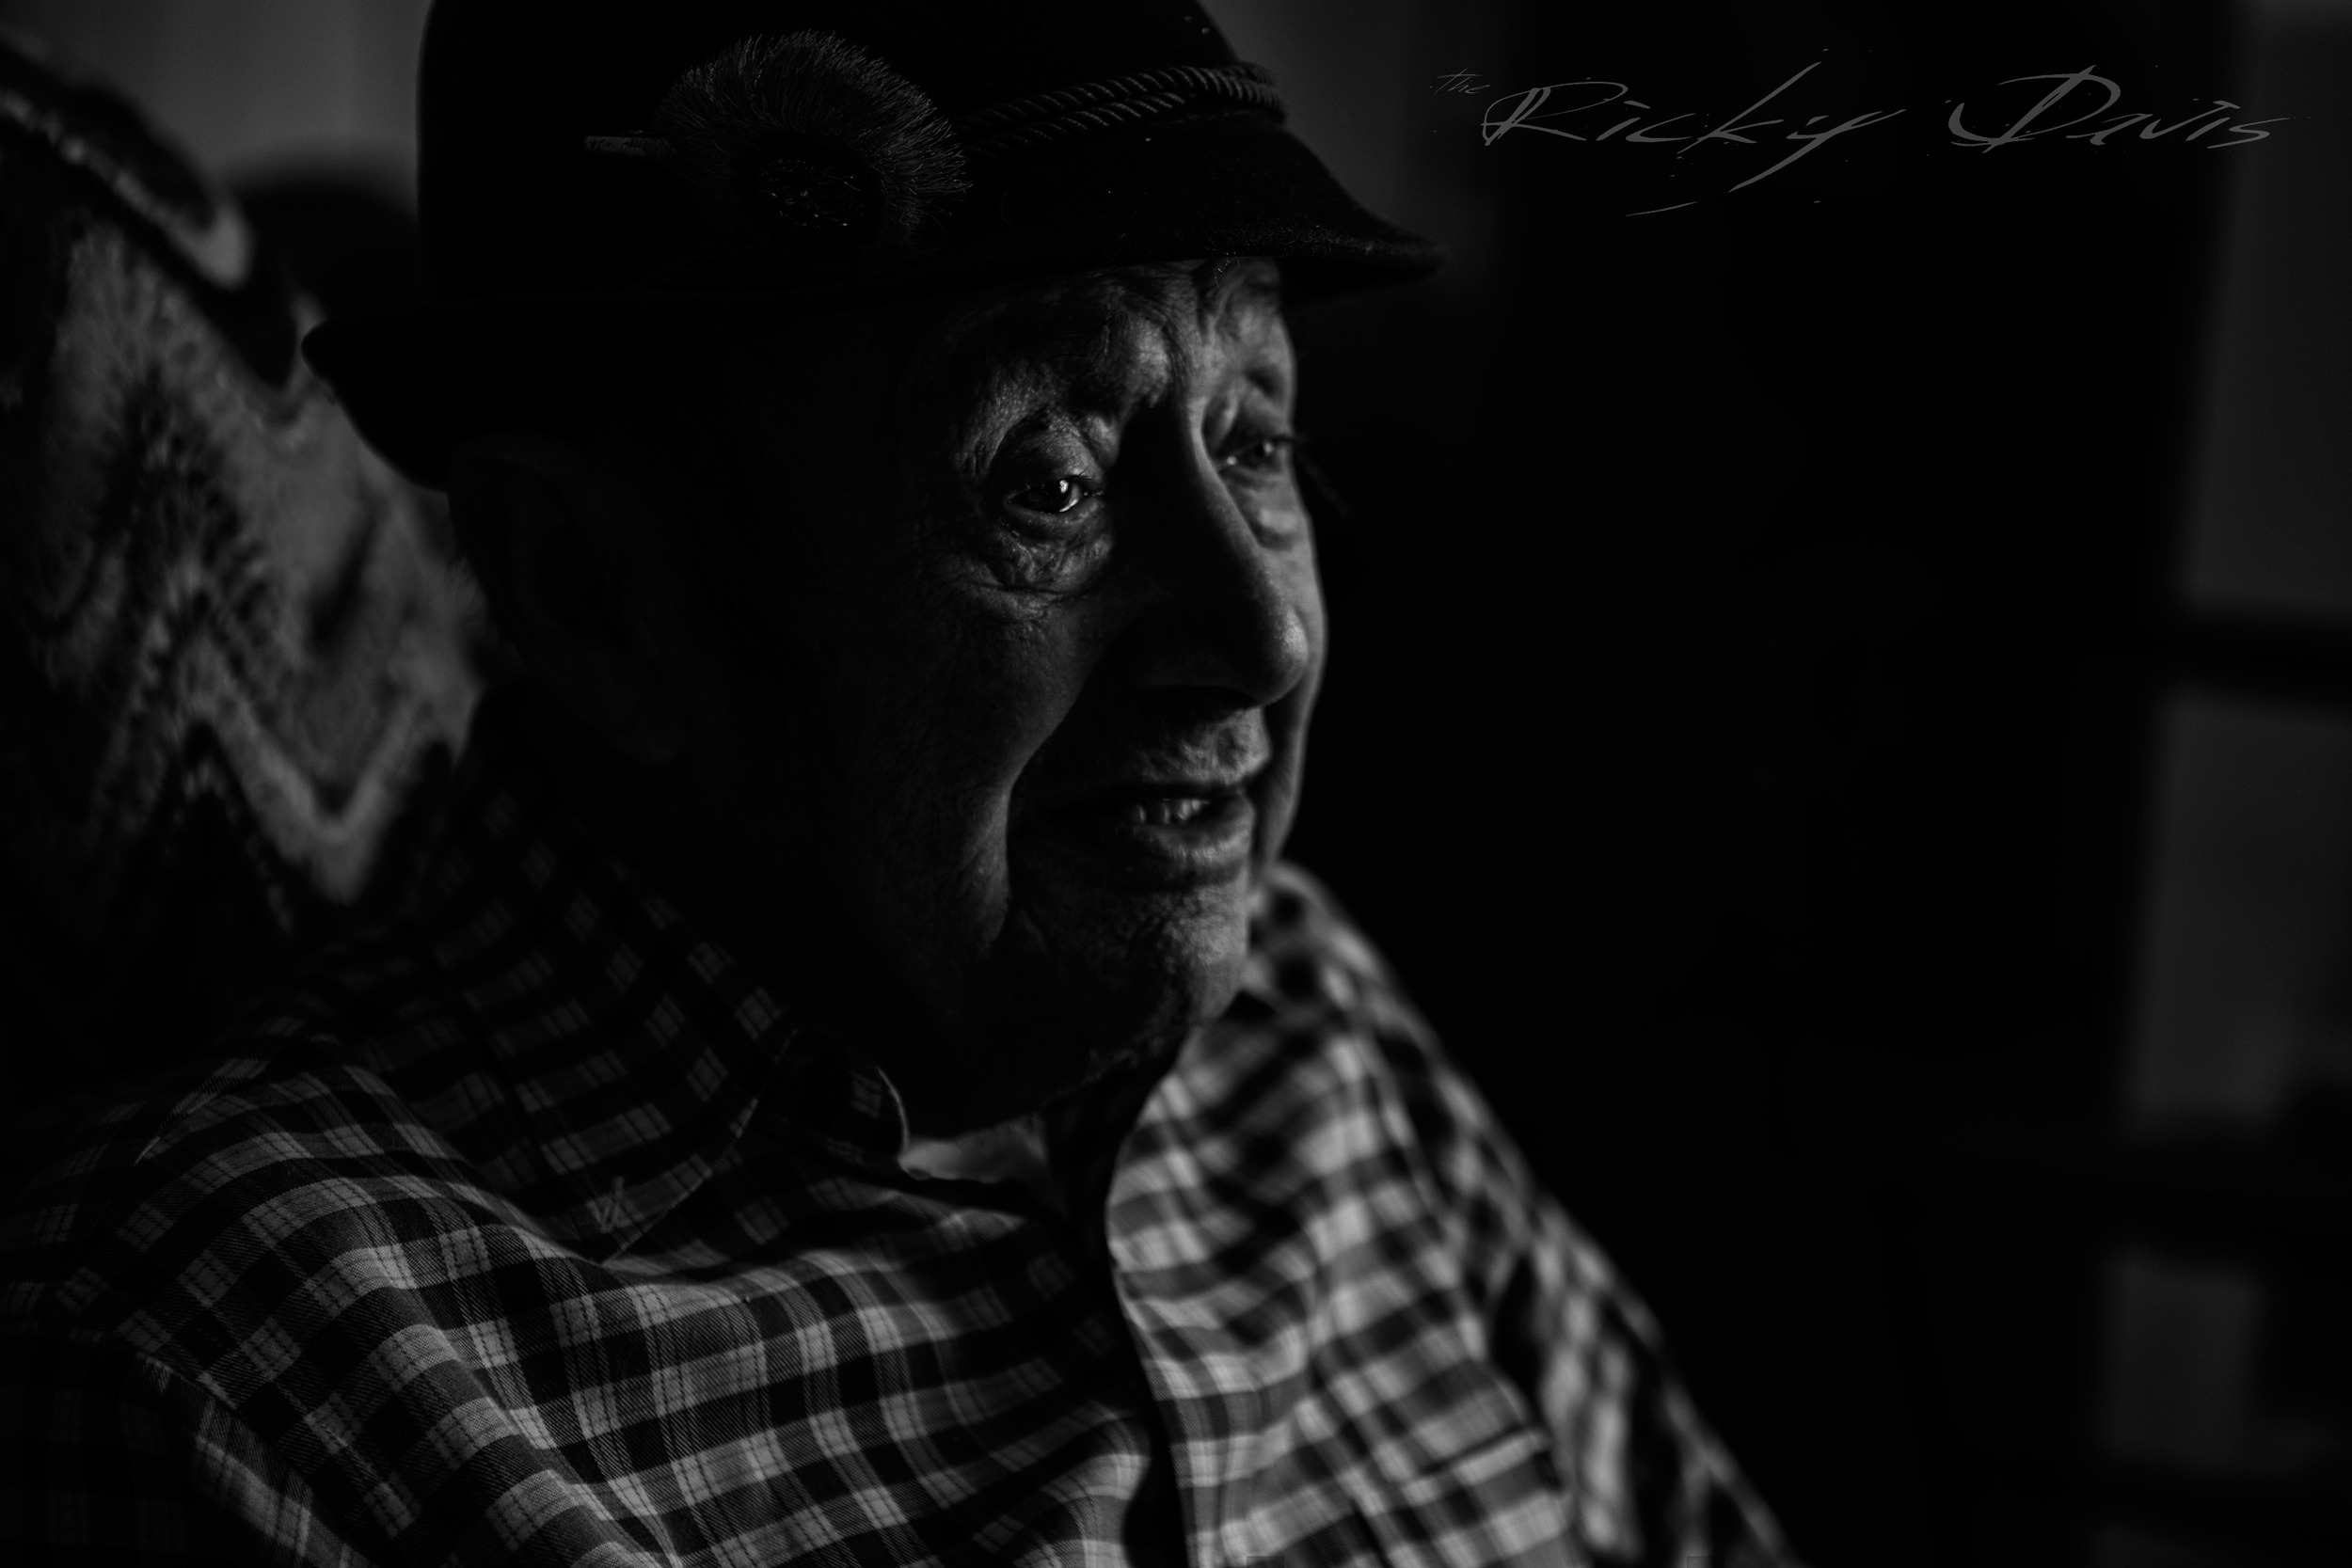 WWII Artilleryman - Pvt. Ralph Davis - Photographer Ricky Davis of TRD Photography - Shot taken with Canon 6D.